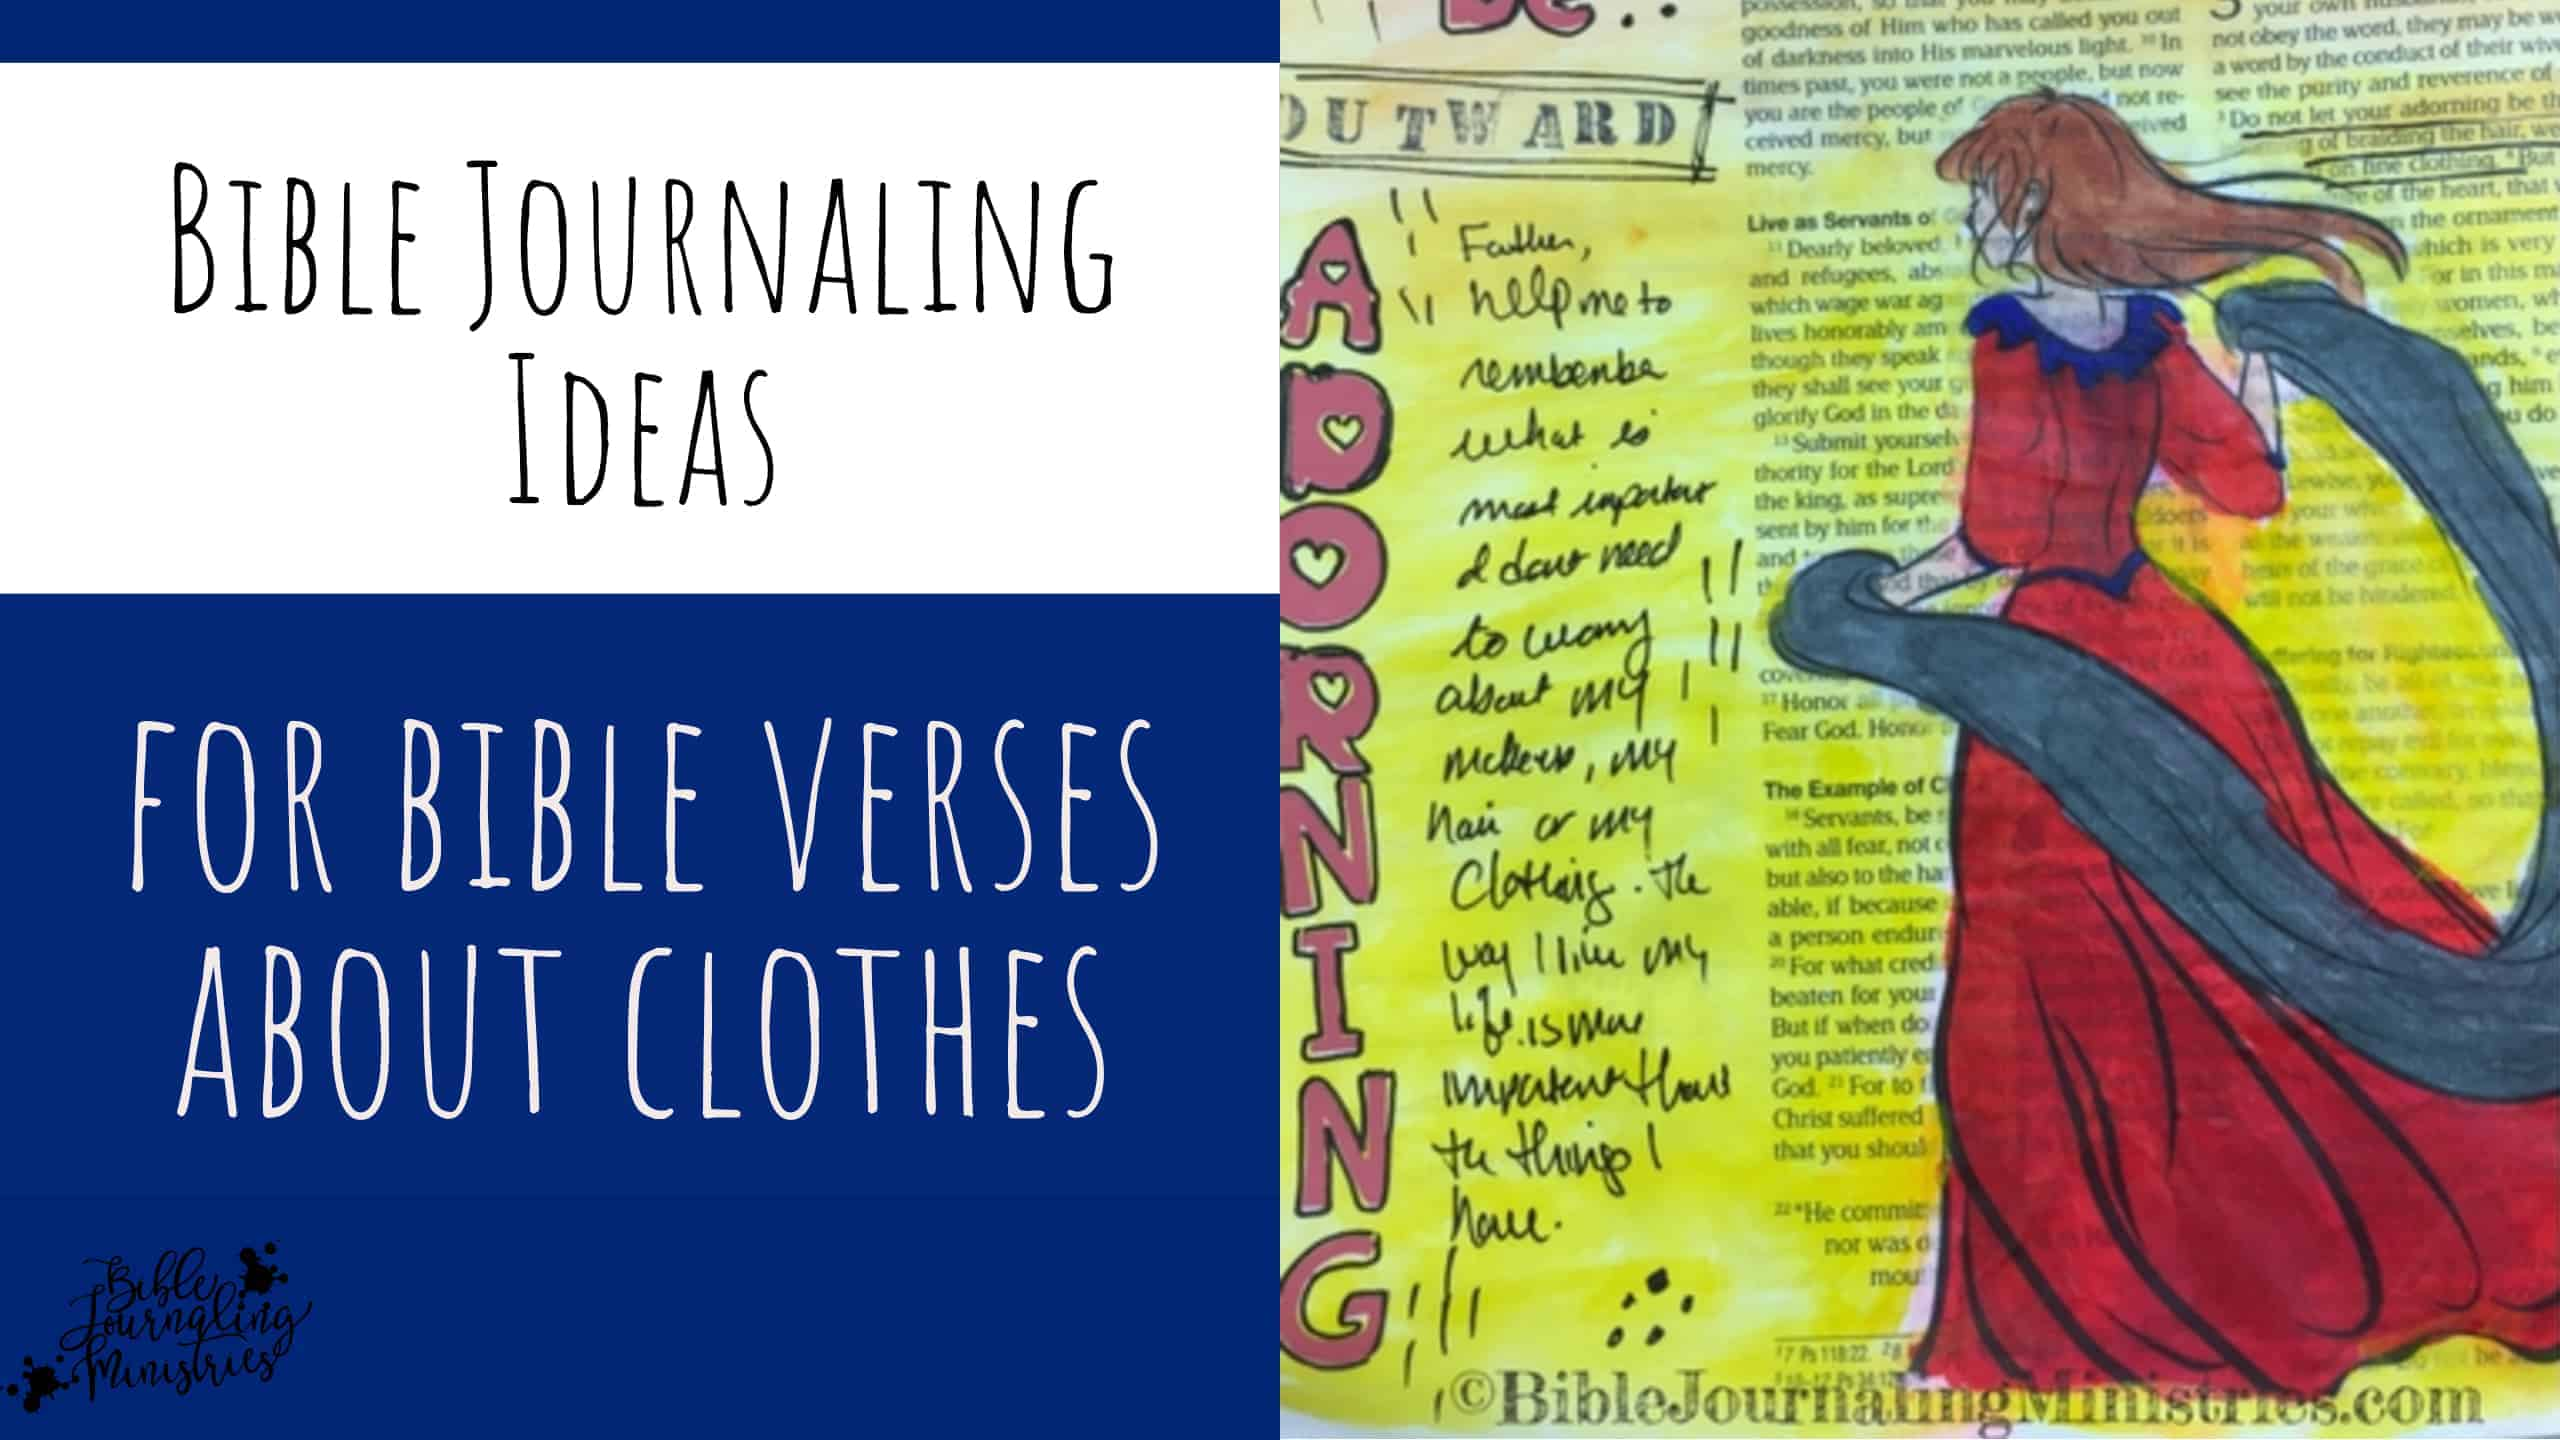 Bible Journaling Ideas for Bible Verses About Clothes